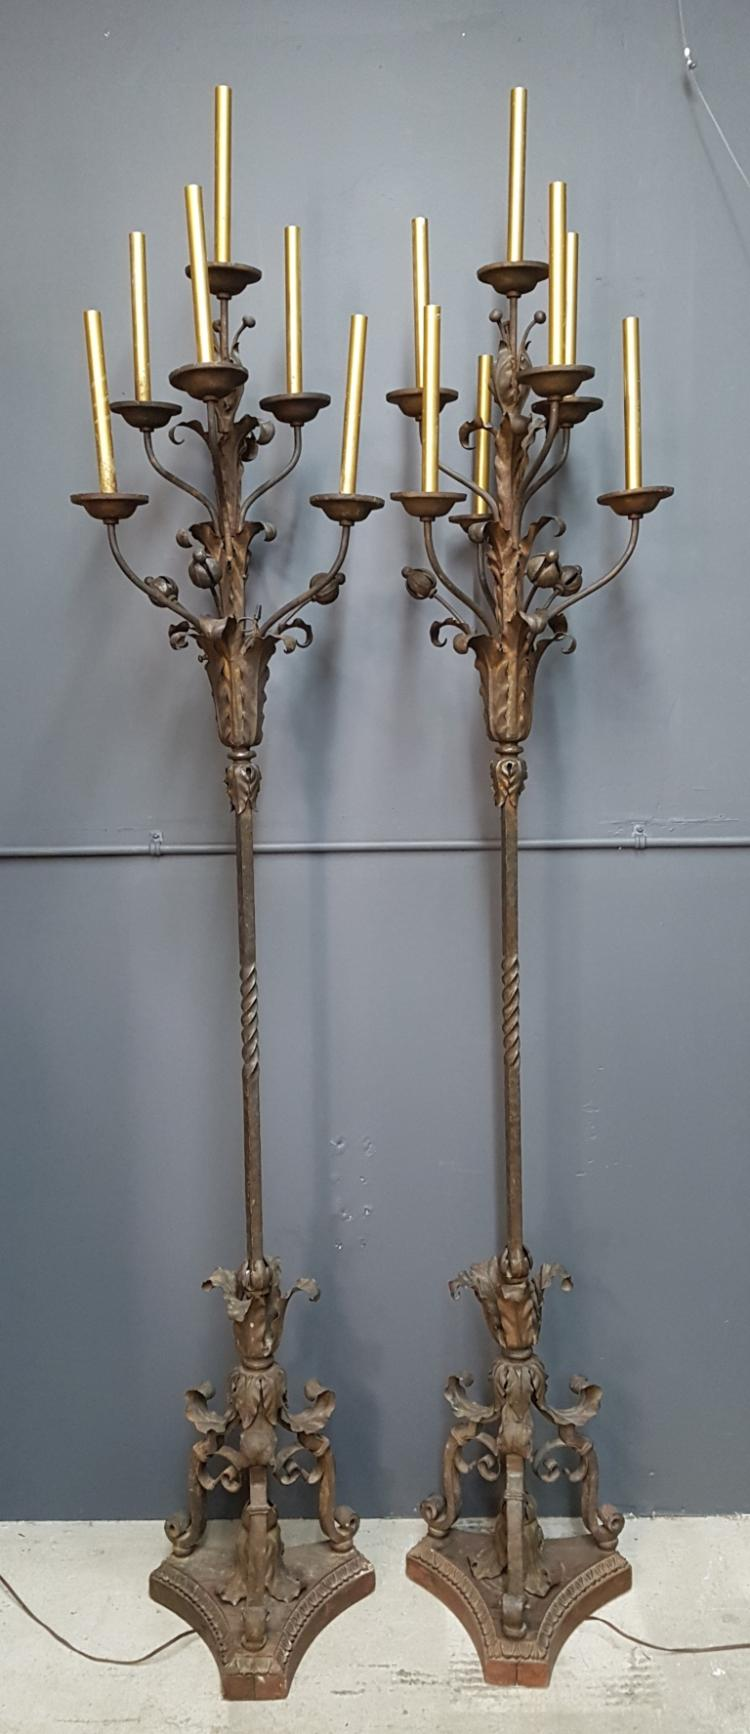 Pair of 19th Century Wrought Iron Lamp Standards in the Manner of Paul Beau